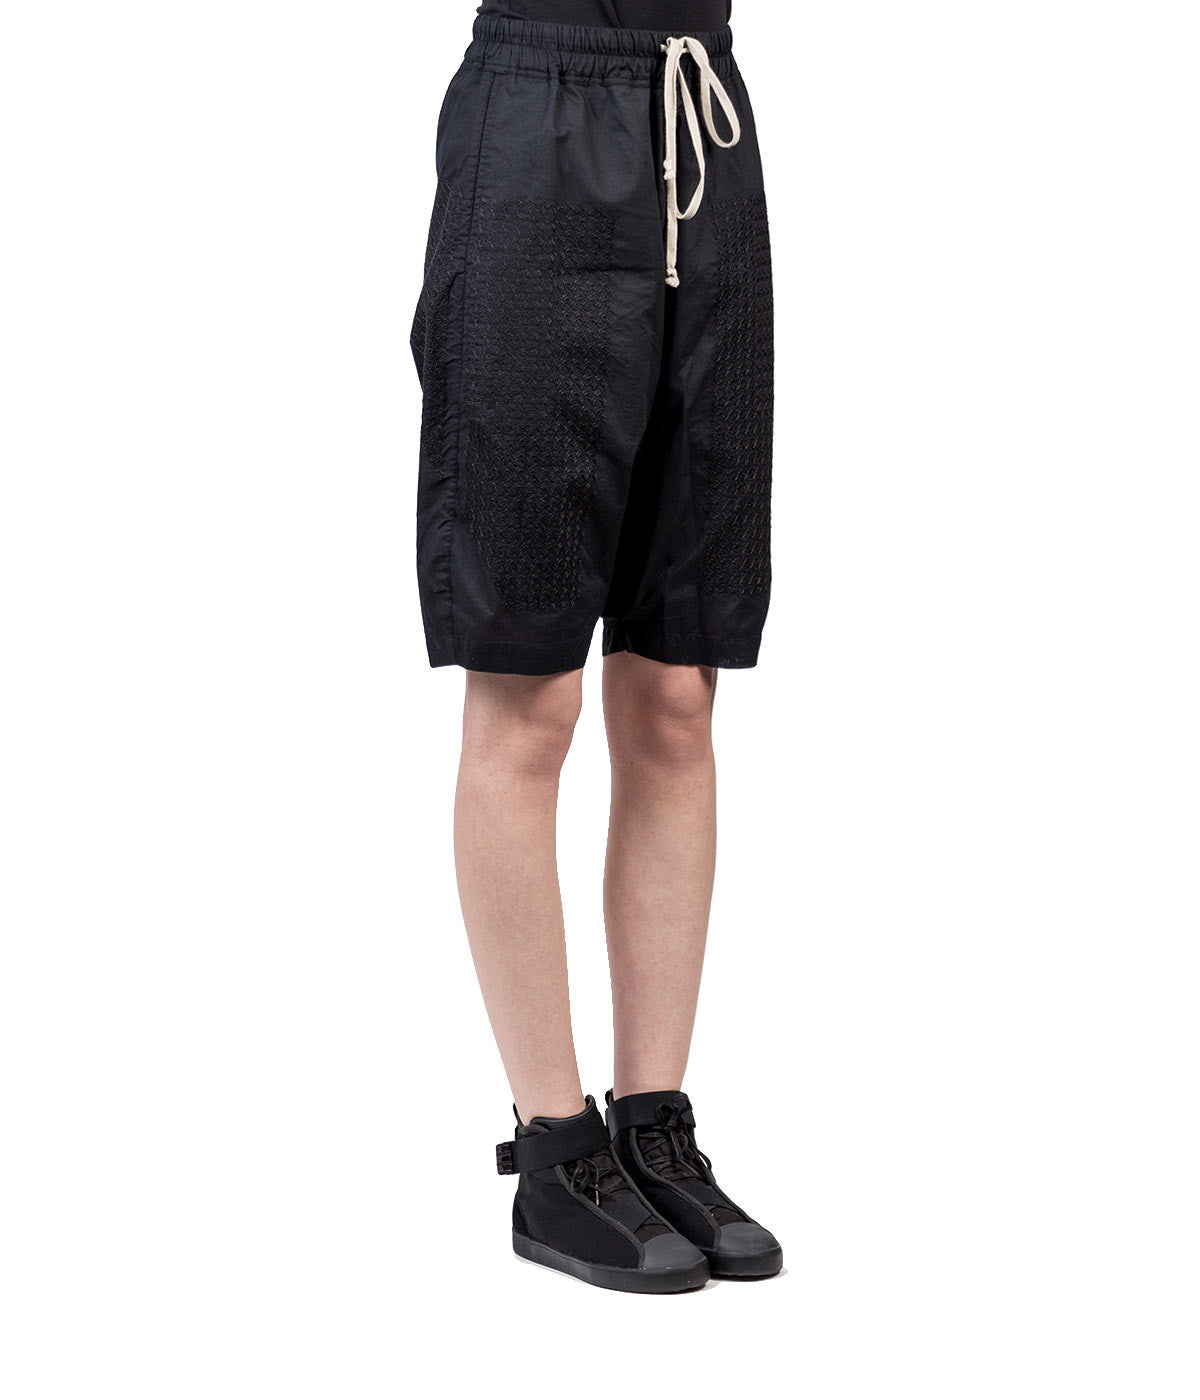 Embroidered Pod Shorts